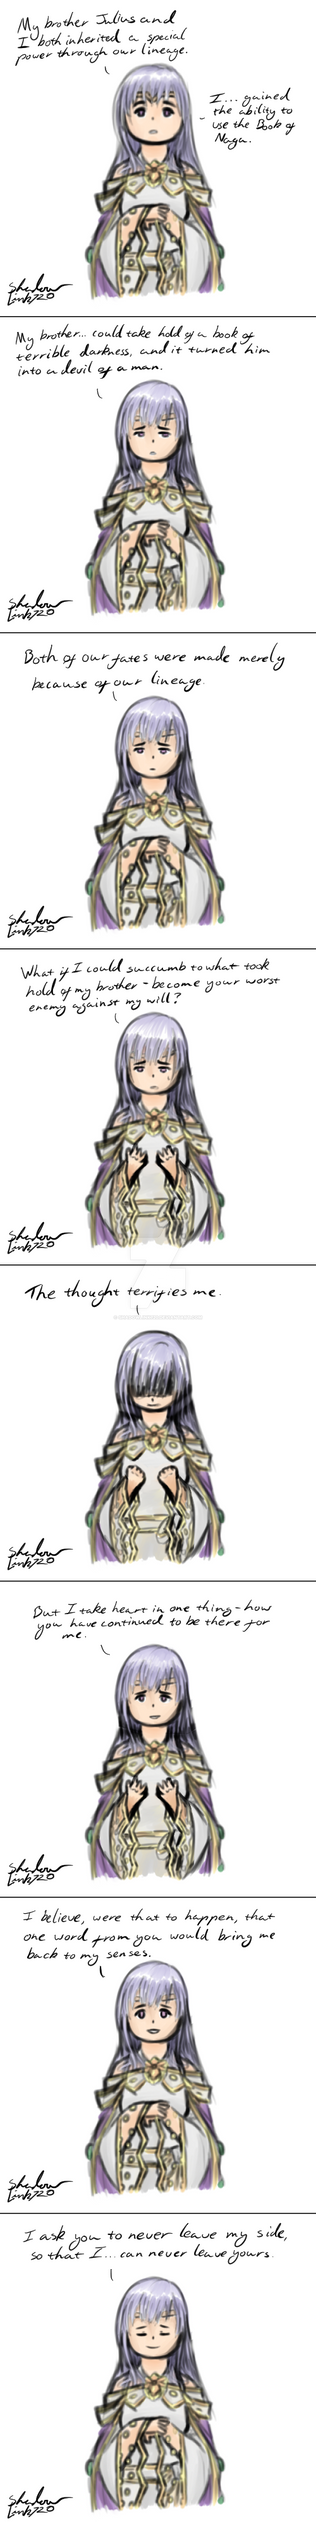 Julia's lv 40 dialogue by ShadowLink720